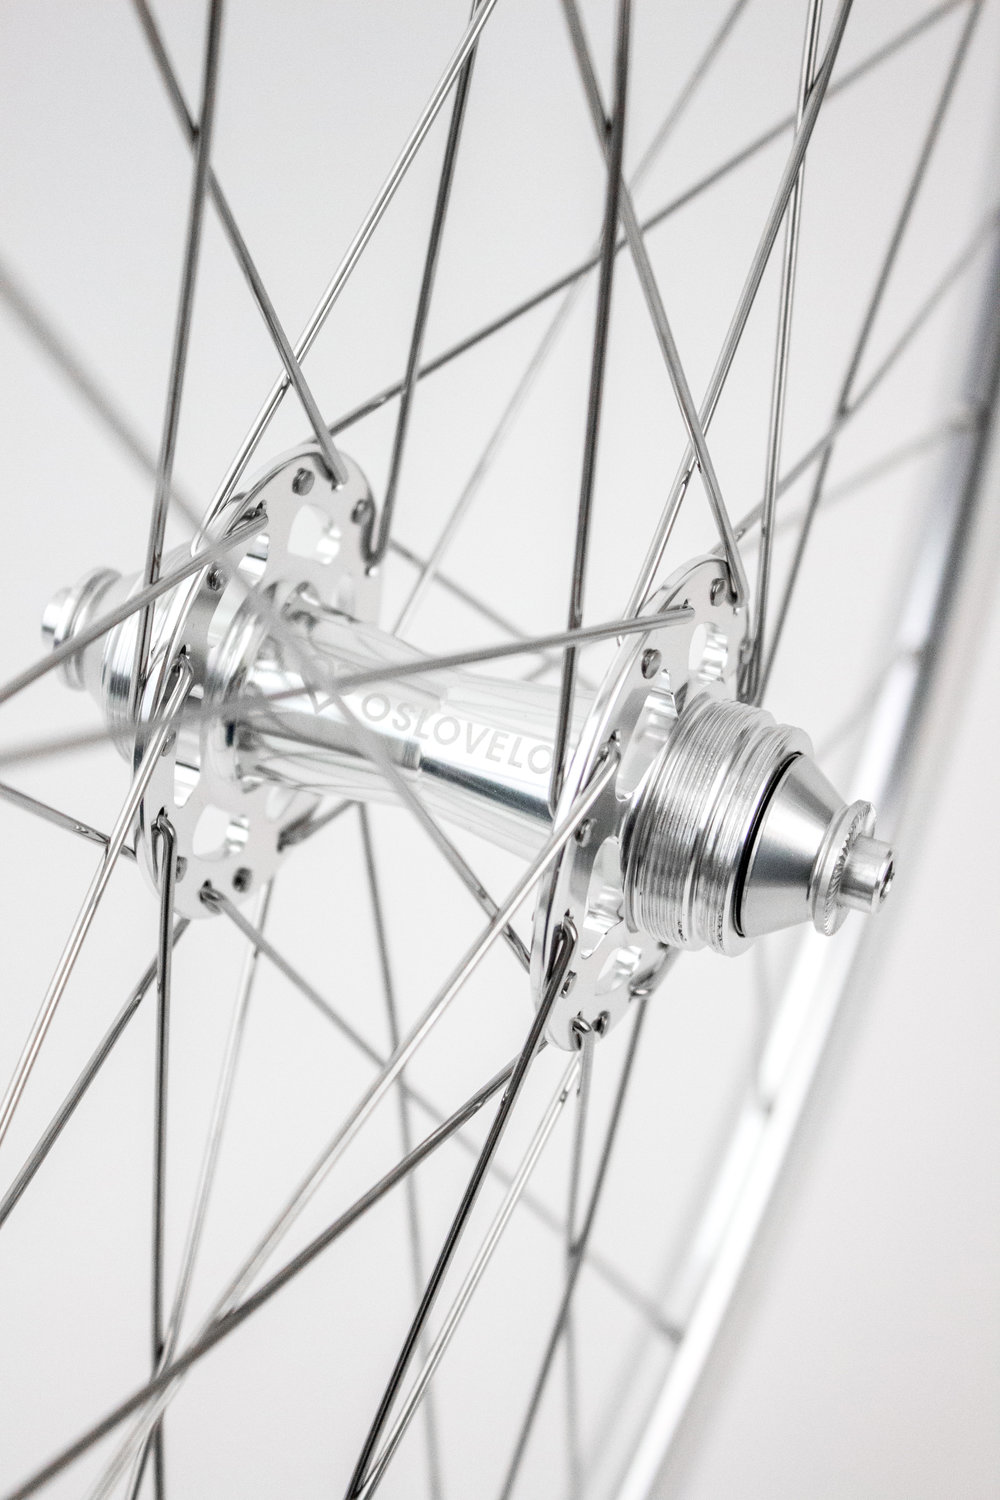 OSLOVELOS OWN HANDBUILDT WHEELSET